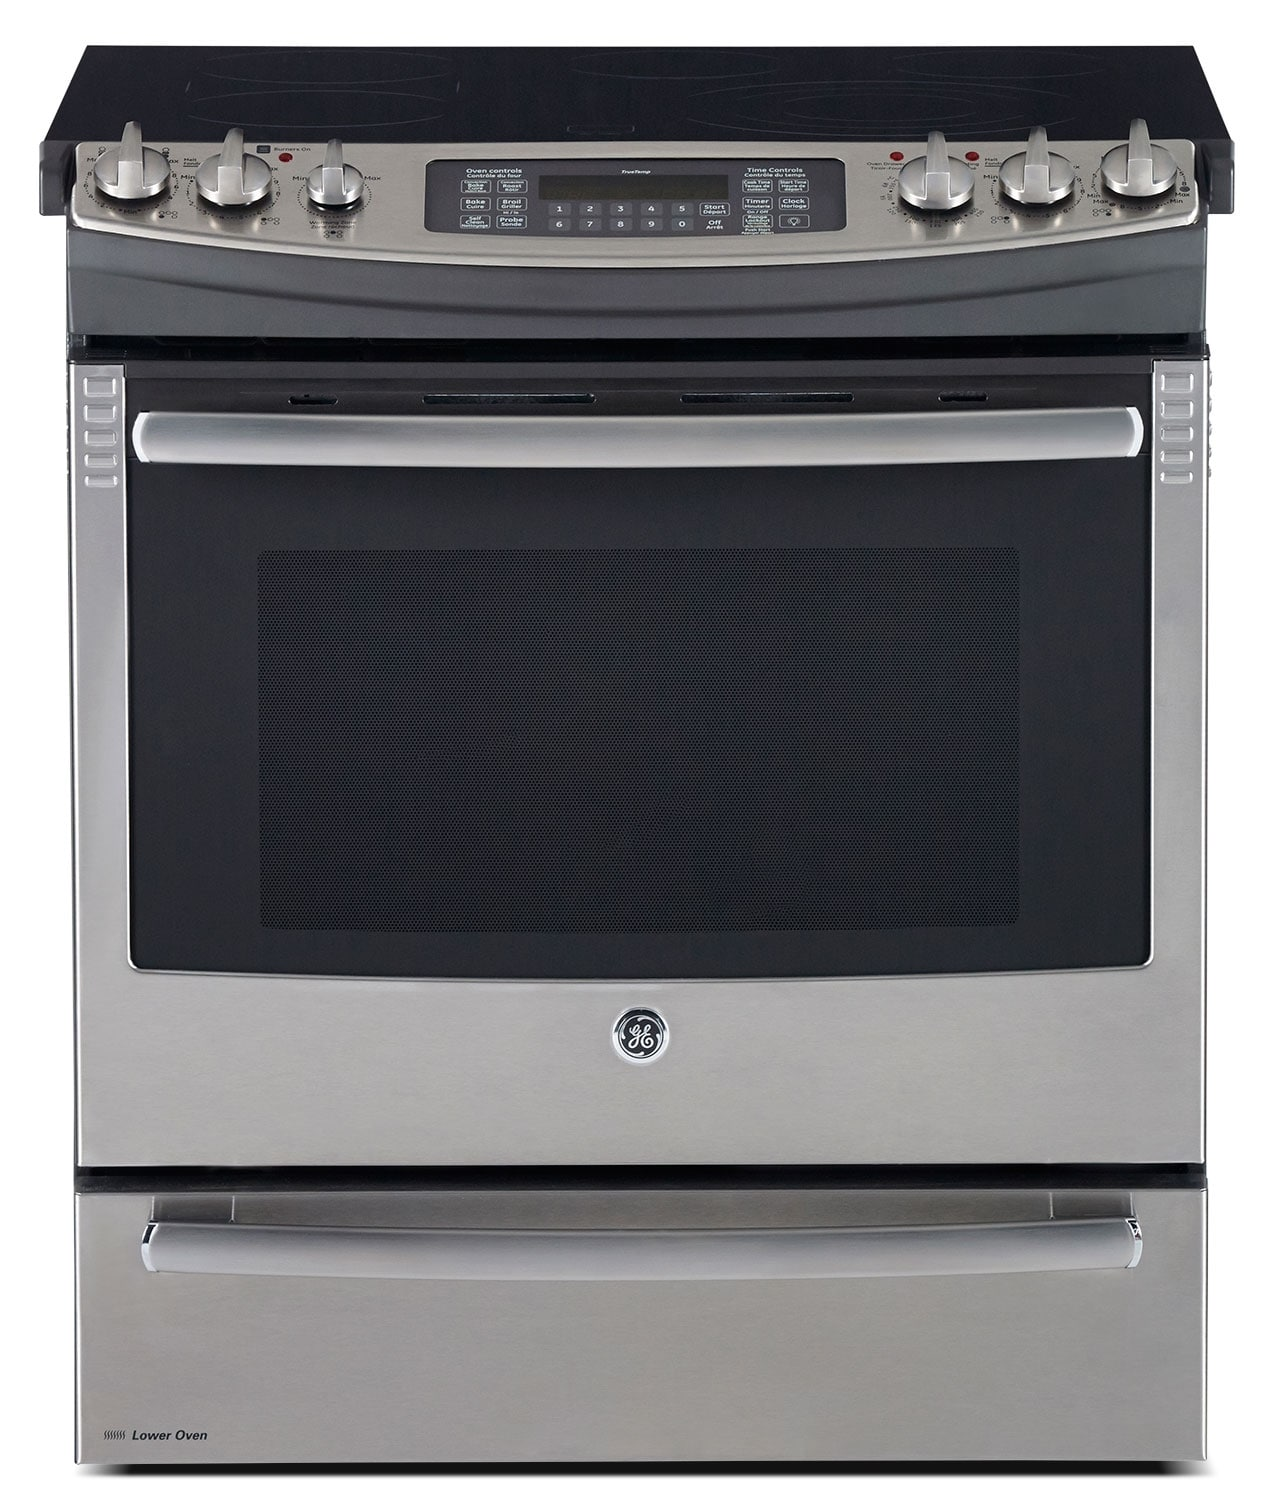 GE Stainless Steel Slide-In Electric Convection Range (6.6 Cu. Ft.) - PCS940SFSS